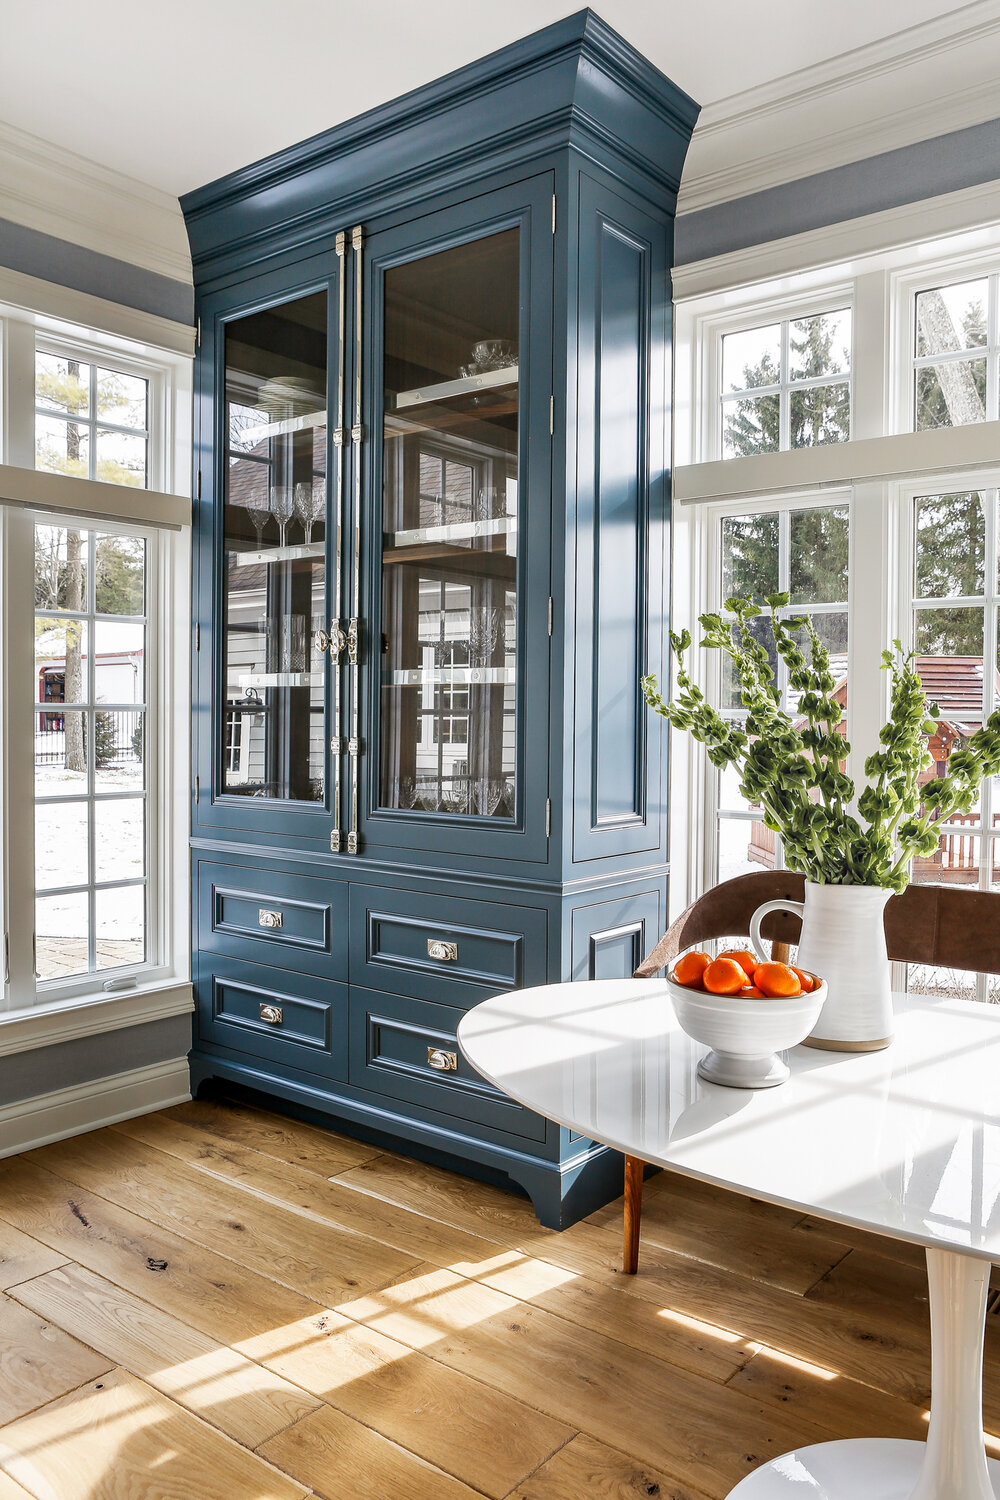 Beautiful blue tall cupboard and hutch with glass doors in a breakfast nook with traditional classic design by Edward Deegan Architects. Find more blue kitchen ideas in this story! #breakfastnook #bluecupboard #bluekitvhen